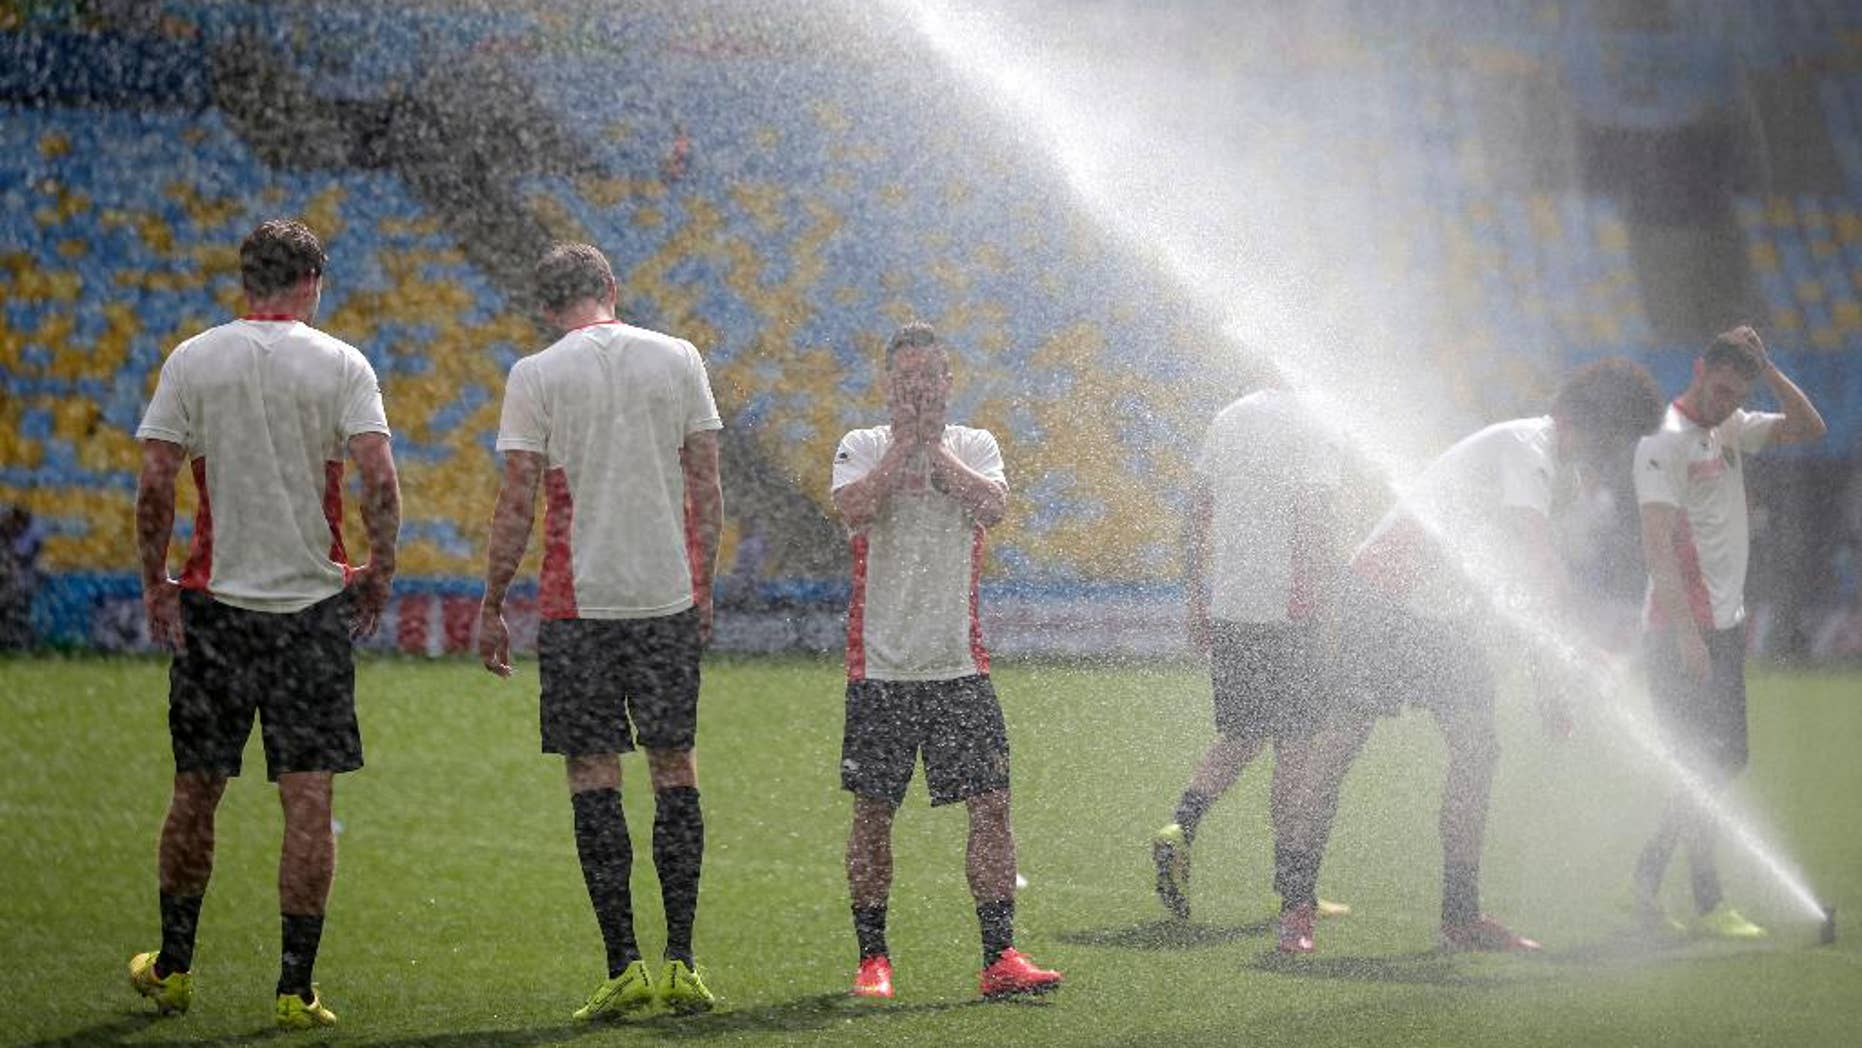 Steven Defour, center, of the Belgium soccer team wipes his face from the spray of a sprinkler at a training session at the Maracana Stadium in Rio de Janeiro, Brazil, Saturday, June 21, 2014. Belgium play in group H of the 2014 soccer World Cup.(AP Photo/Wong Maye-E)